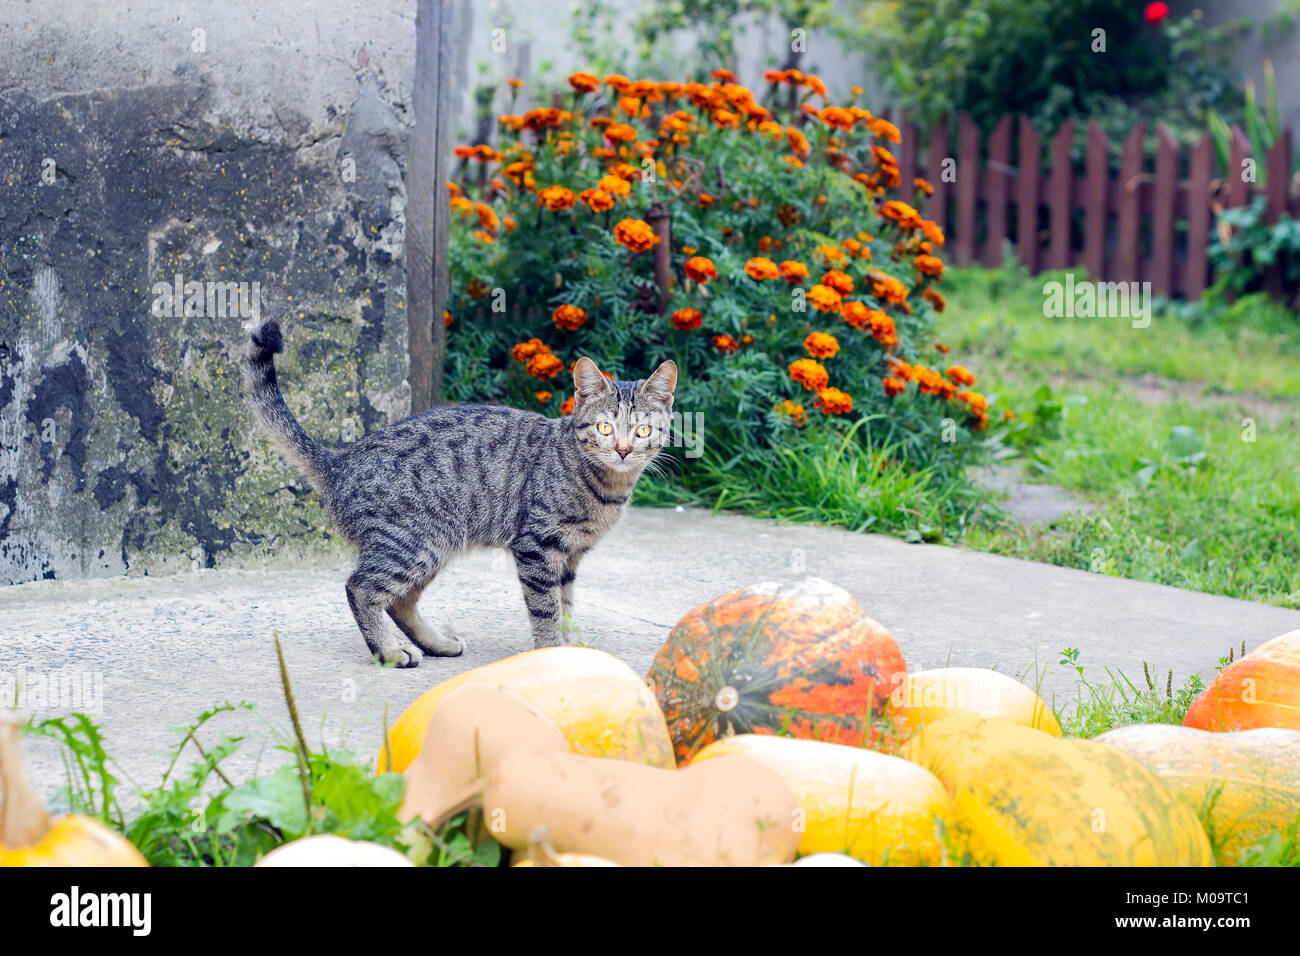 Tabby cat stands near harvest of pumpkins in yard - Stock Image